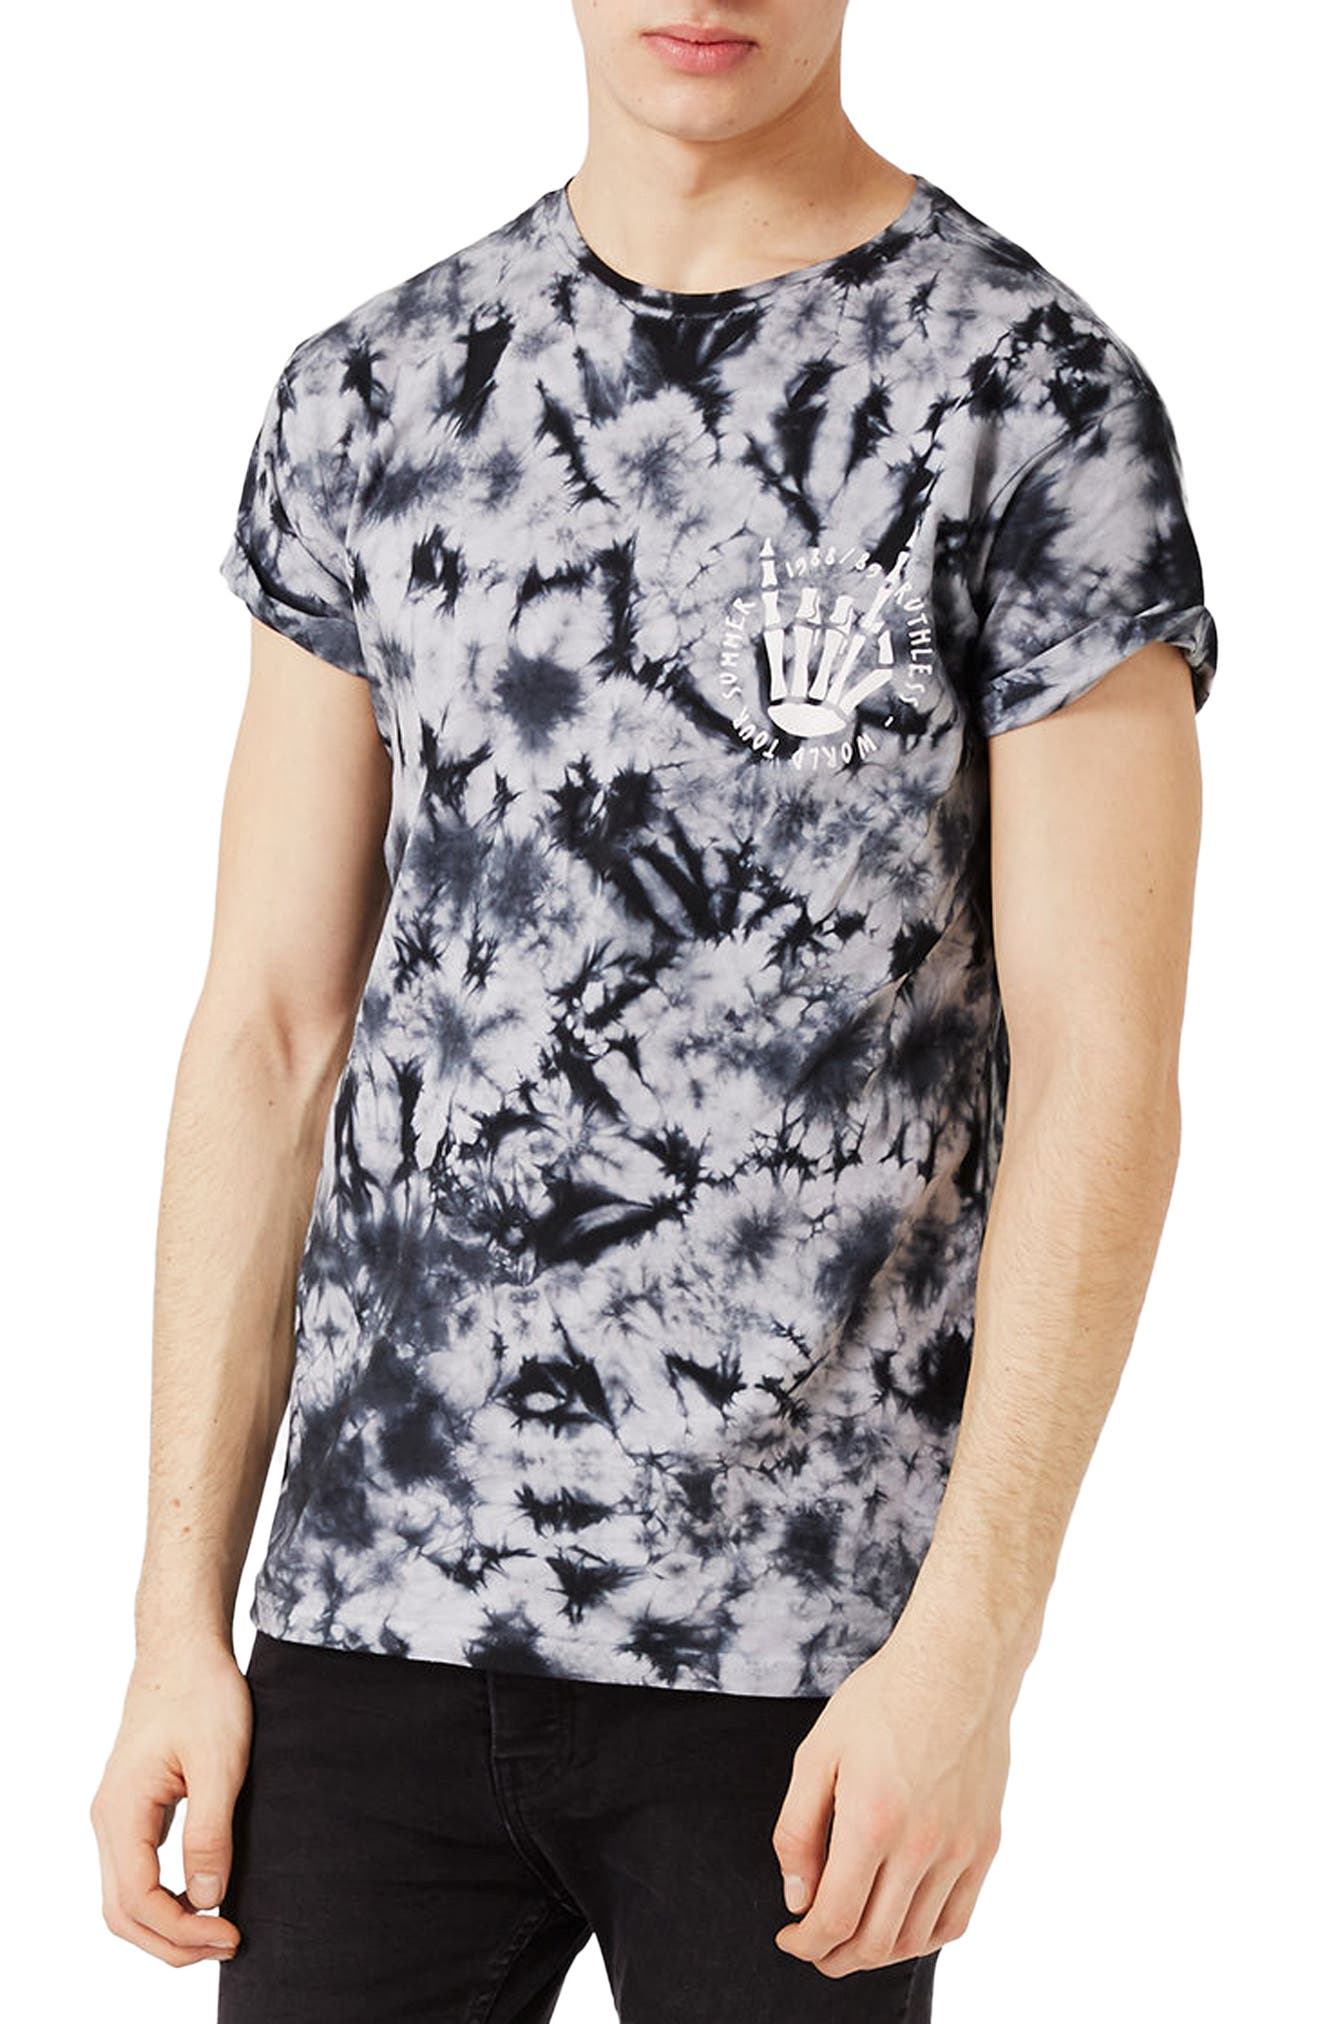 Alternate Image 1 Selected - Topman Ruthless Graphic Tie Dye T-Shirt